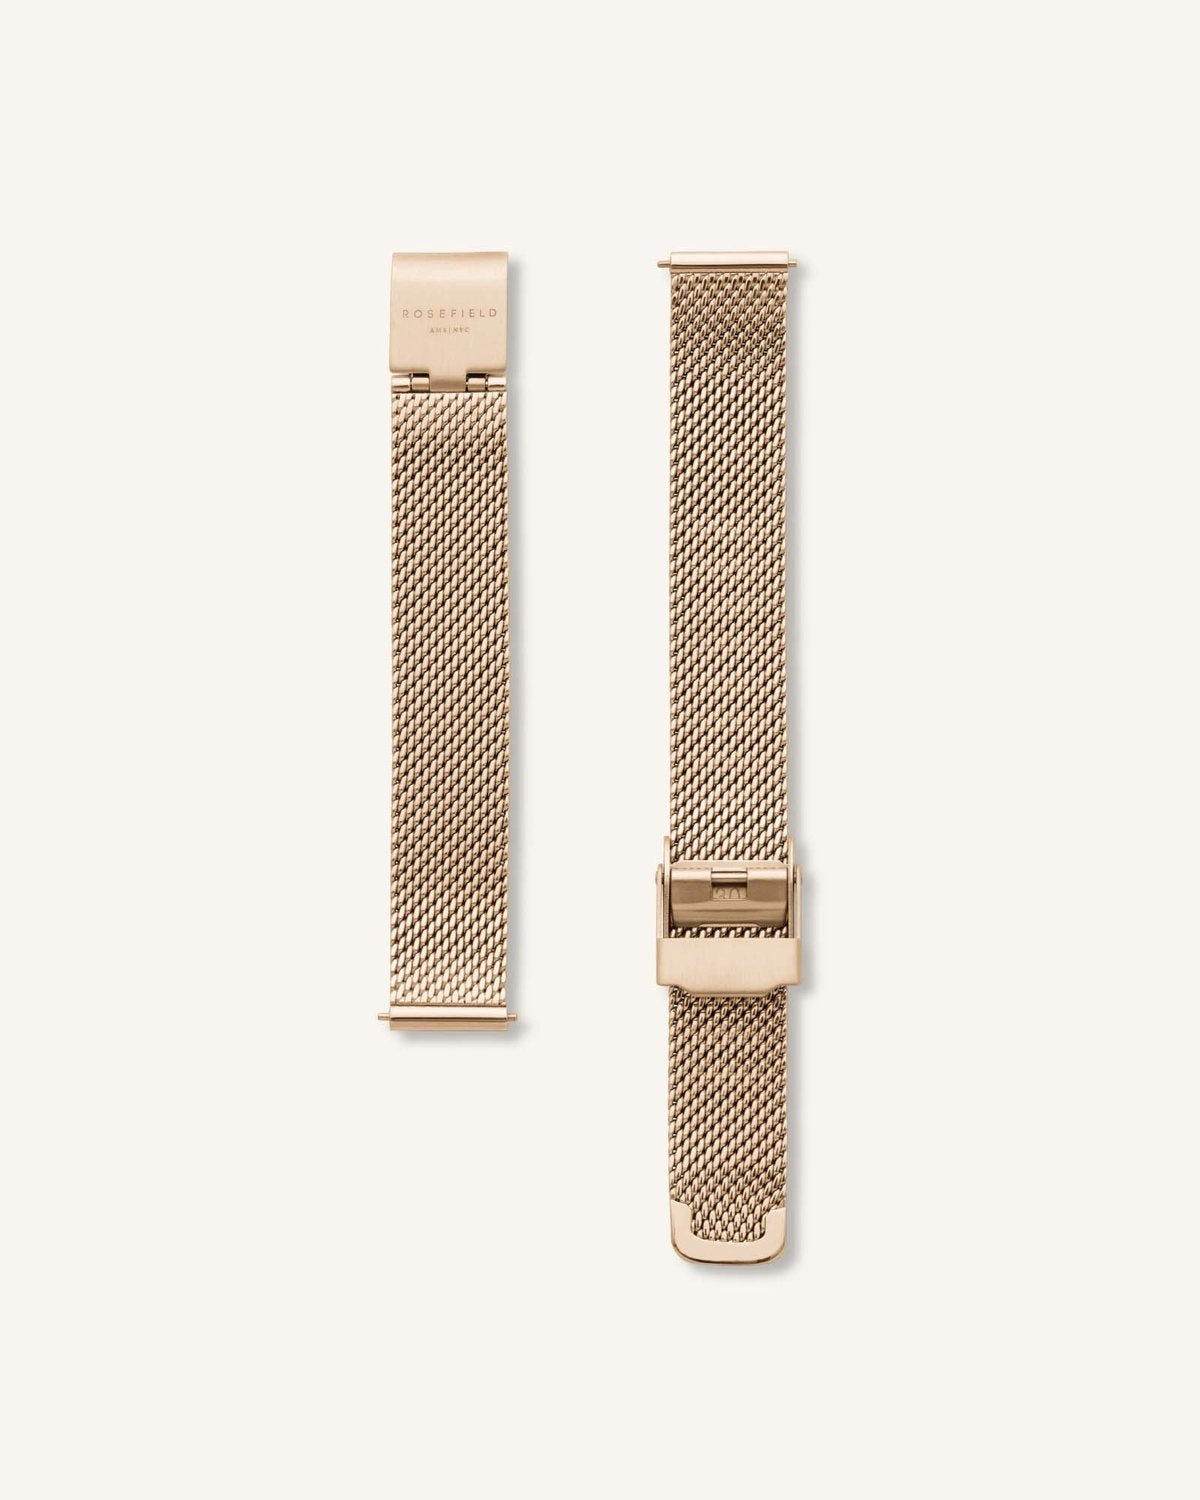 XS Boxy Watch / Gold Mesh